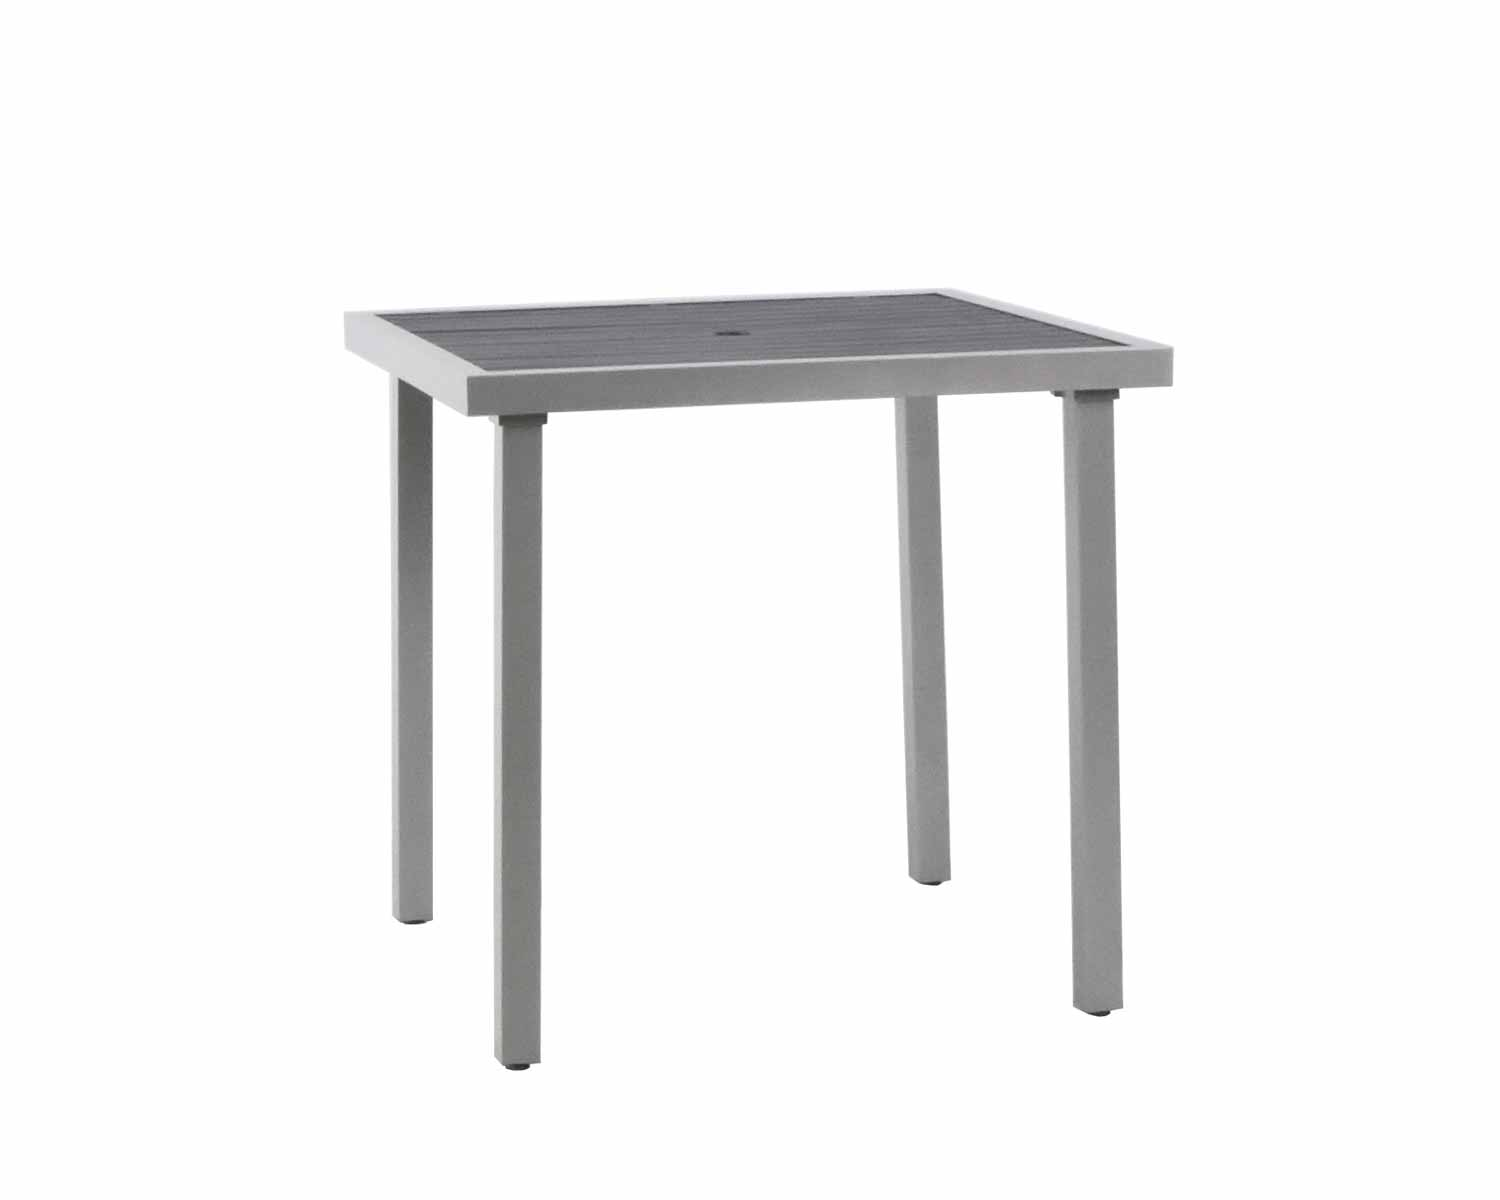 """MES-36S 36"""" Square Dining Table   36"""" x 36"""" x 29"""""""